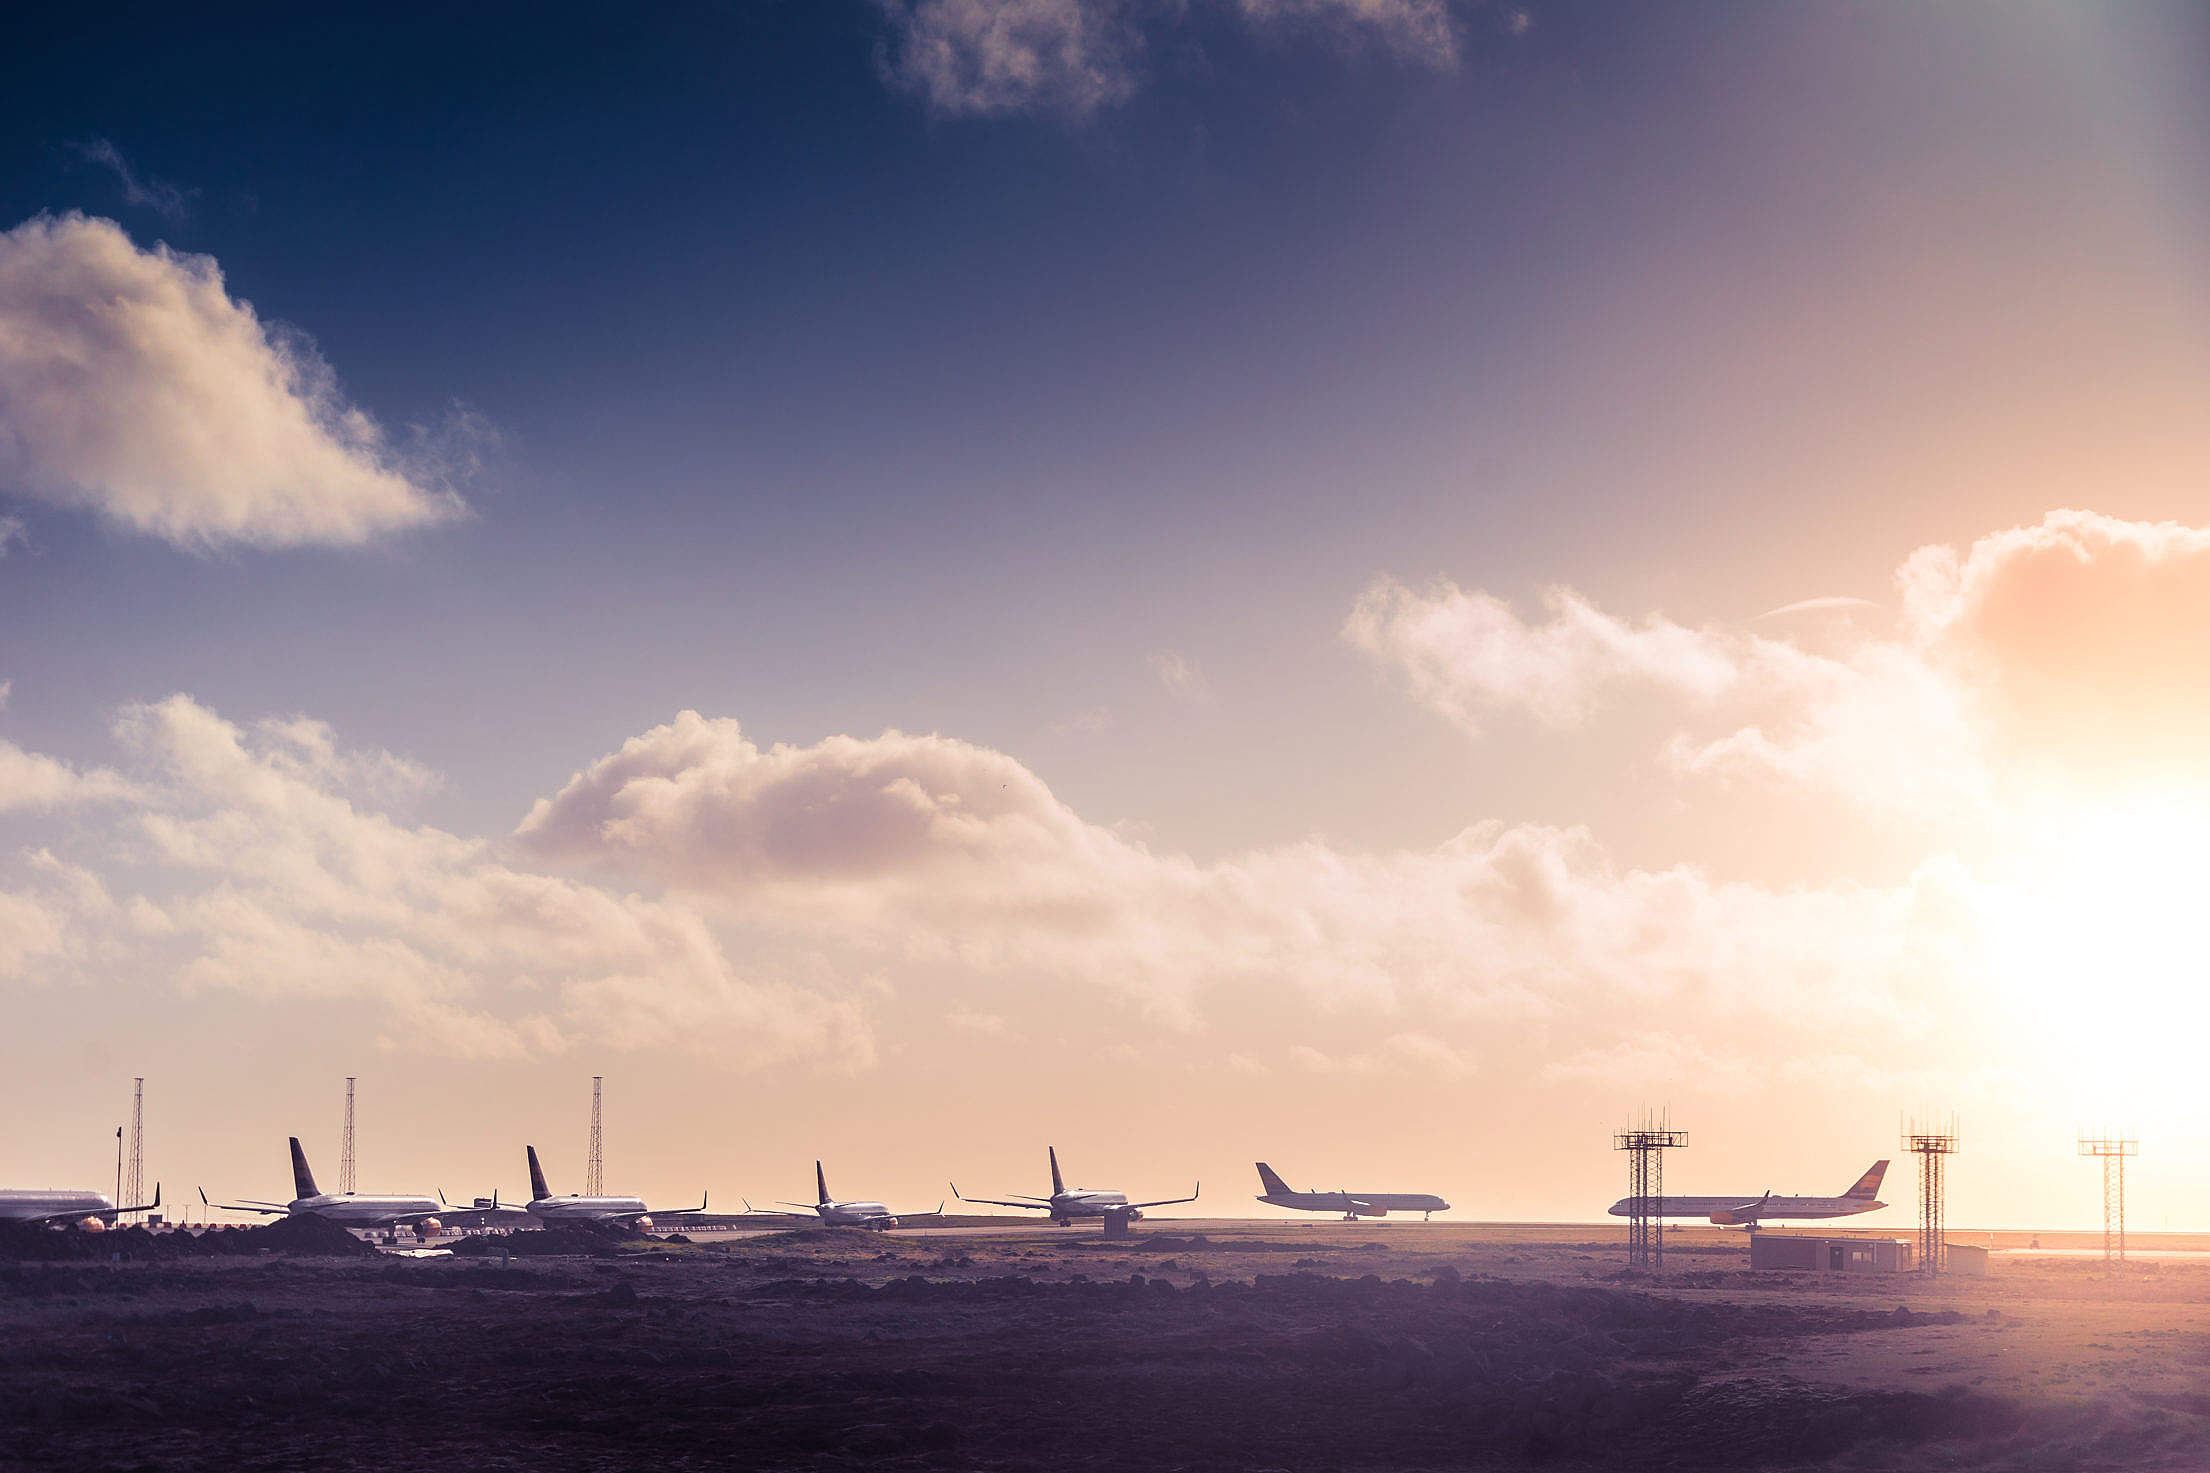 Airplane Taxiway Queue Free Stock Photo